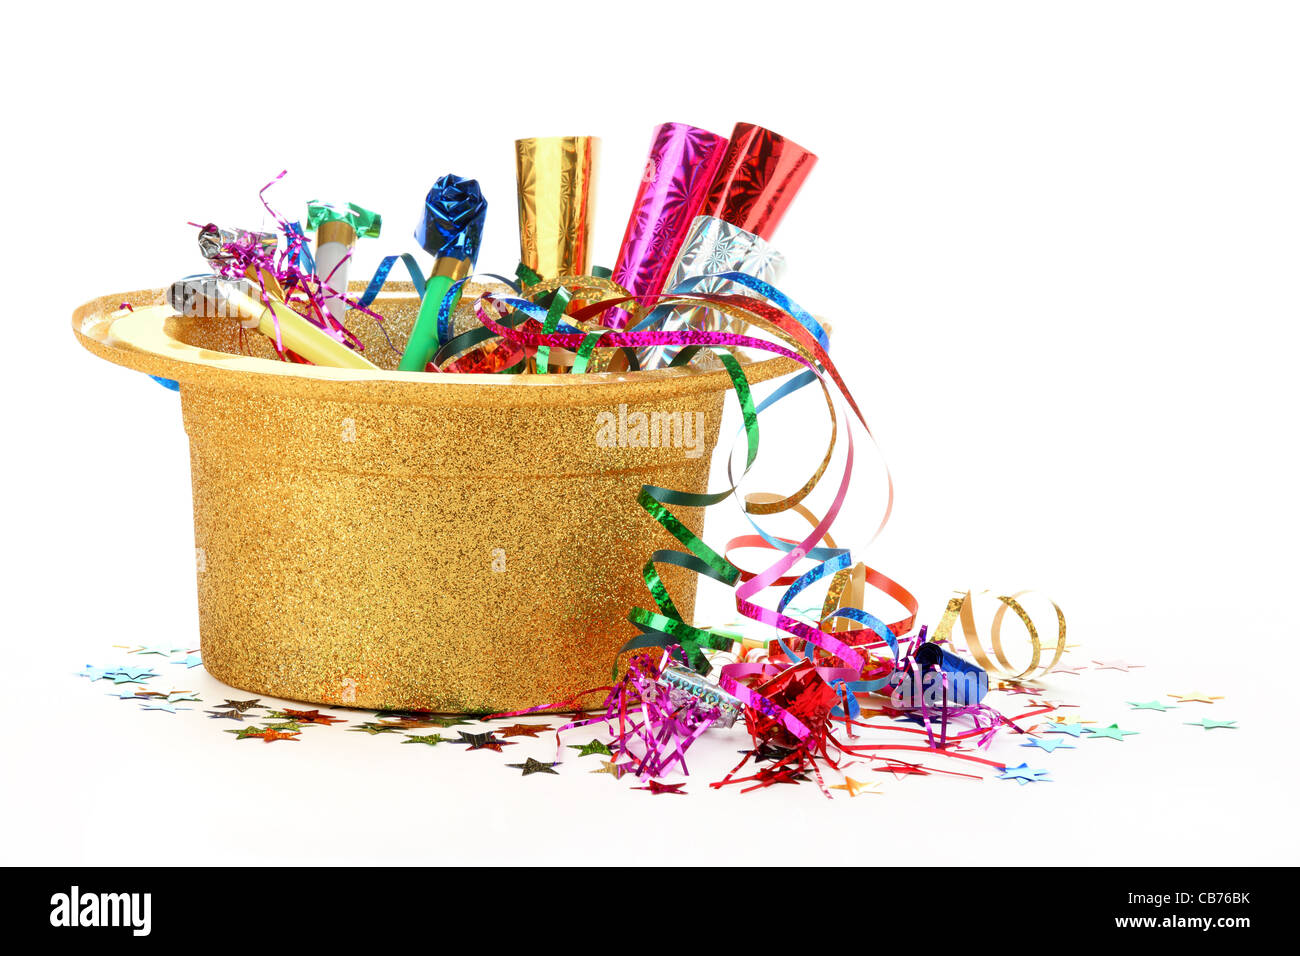 New Year's hat filled with noise makers, streamers and confetti on white background. - Stock Image